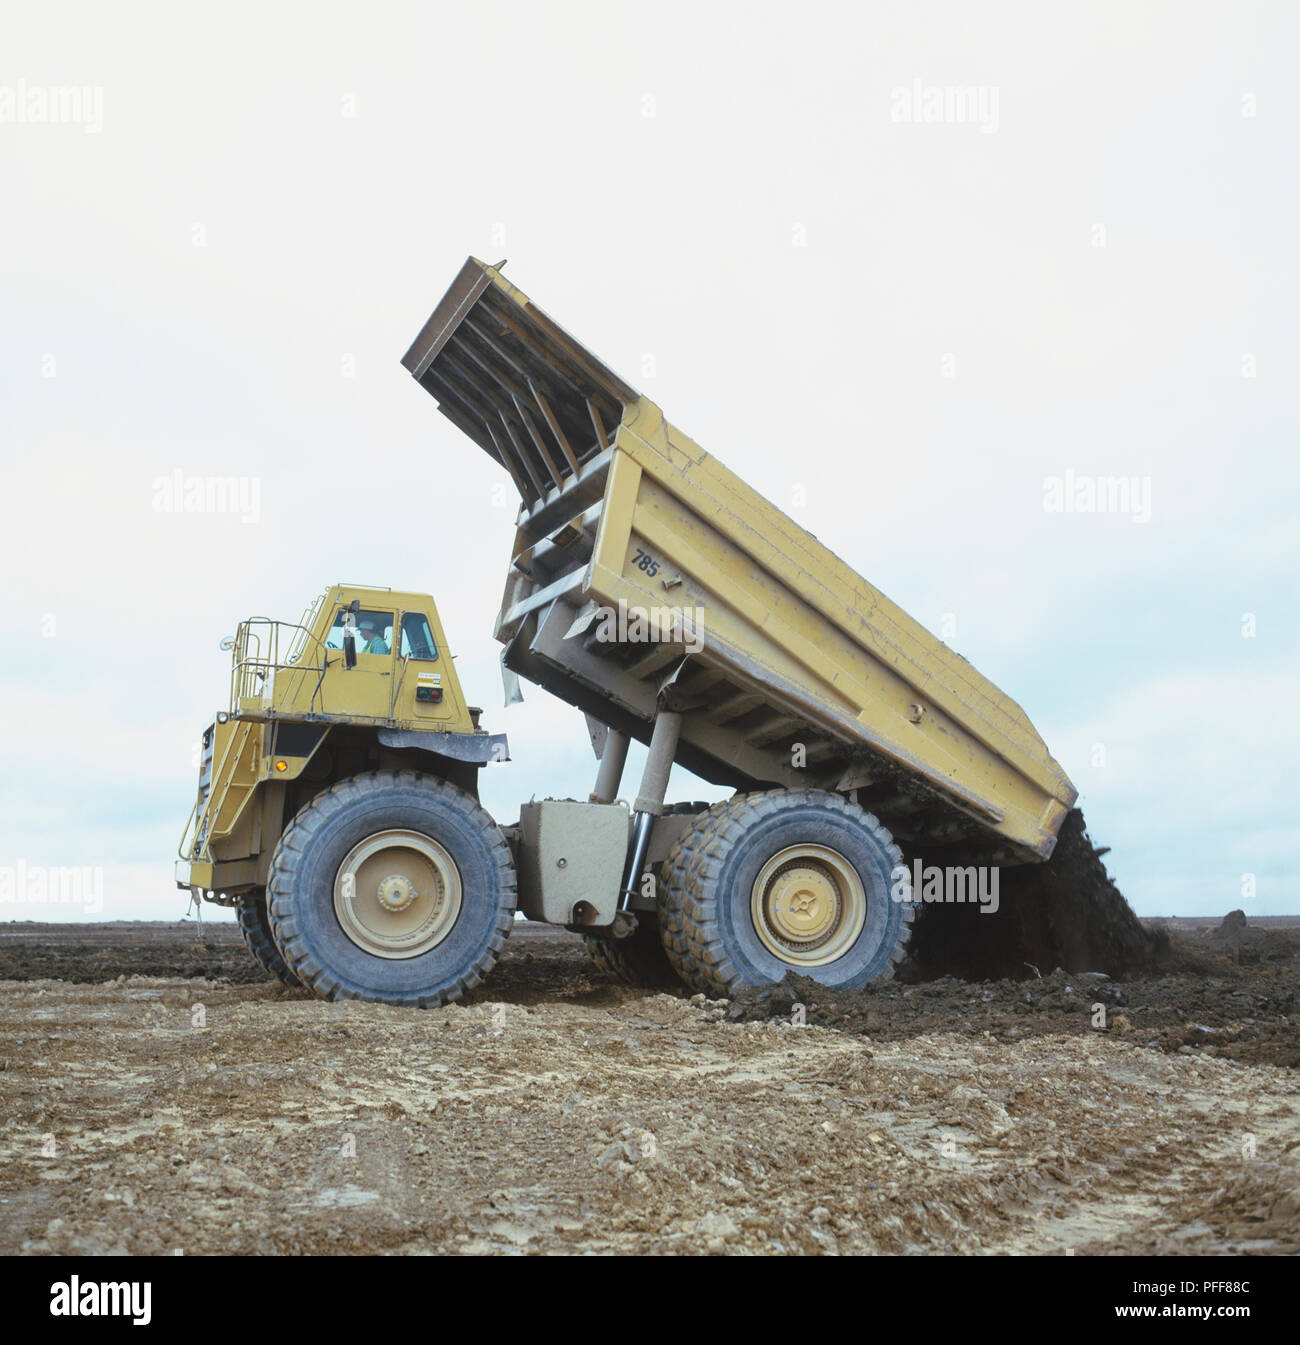 Yellow truck with tilted rear dumping rubble, side view. - Stock Image